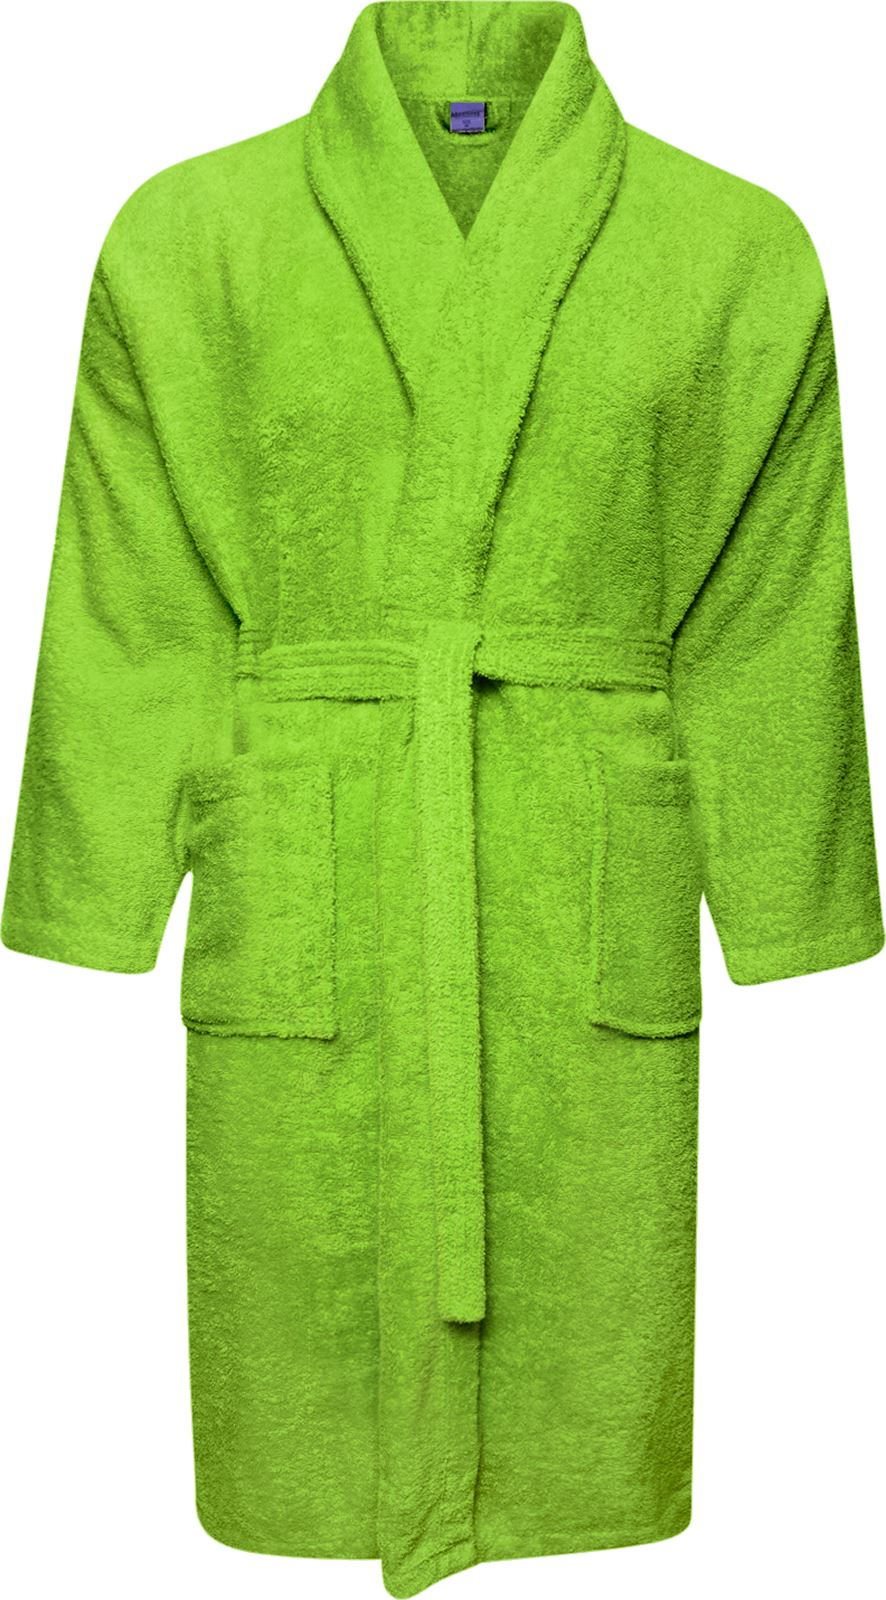 Details about 100% Cotton Terry Towelling Shawl Collar Lime Green Bathrobe  Dressing Gown Robe ea5ace880